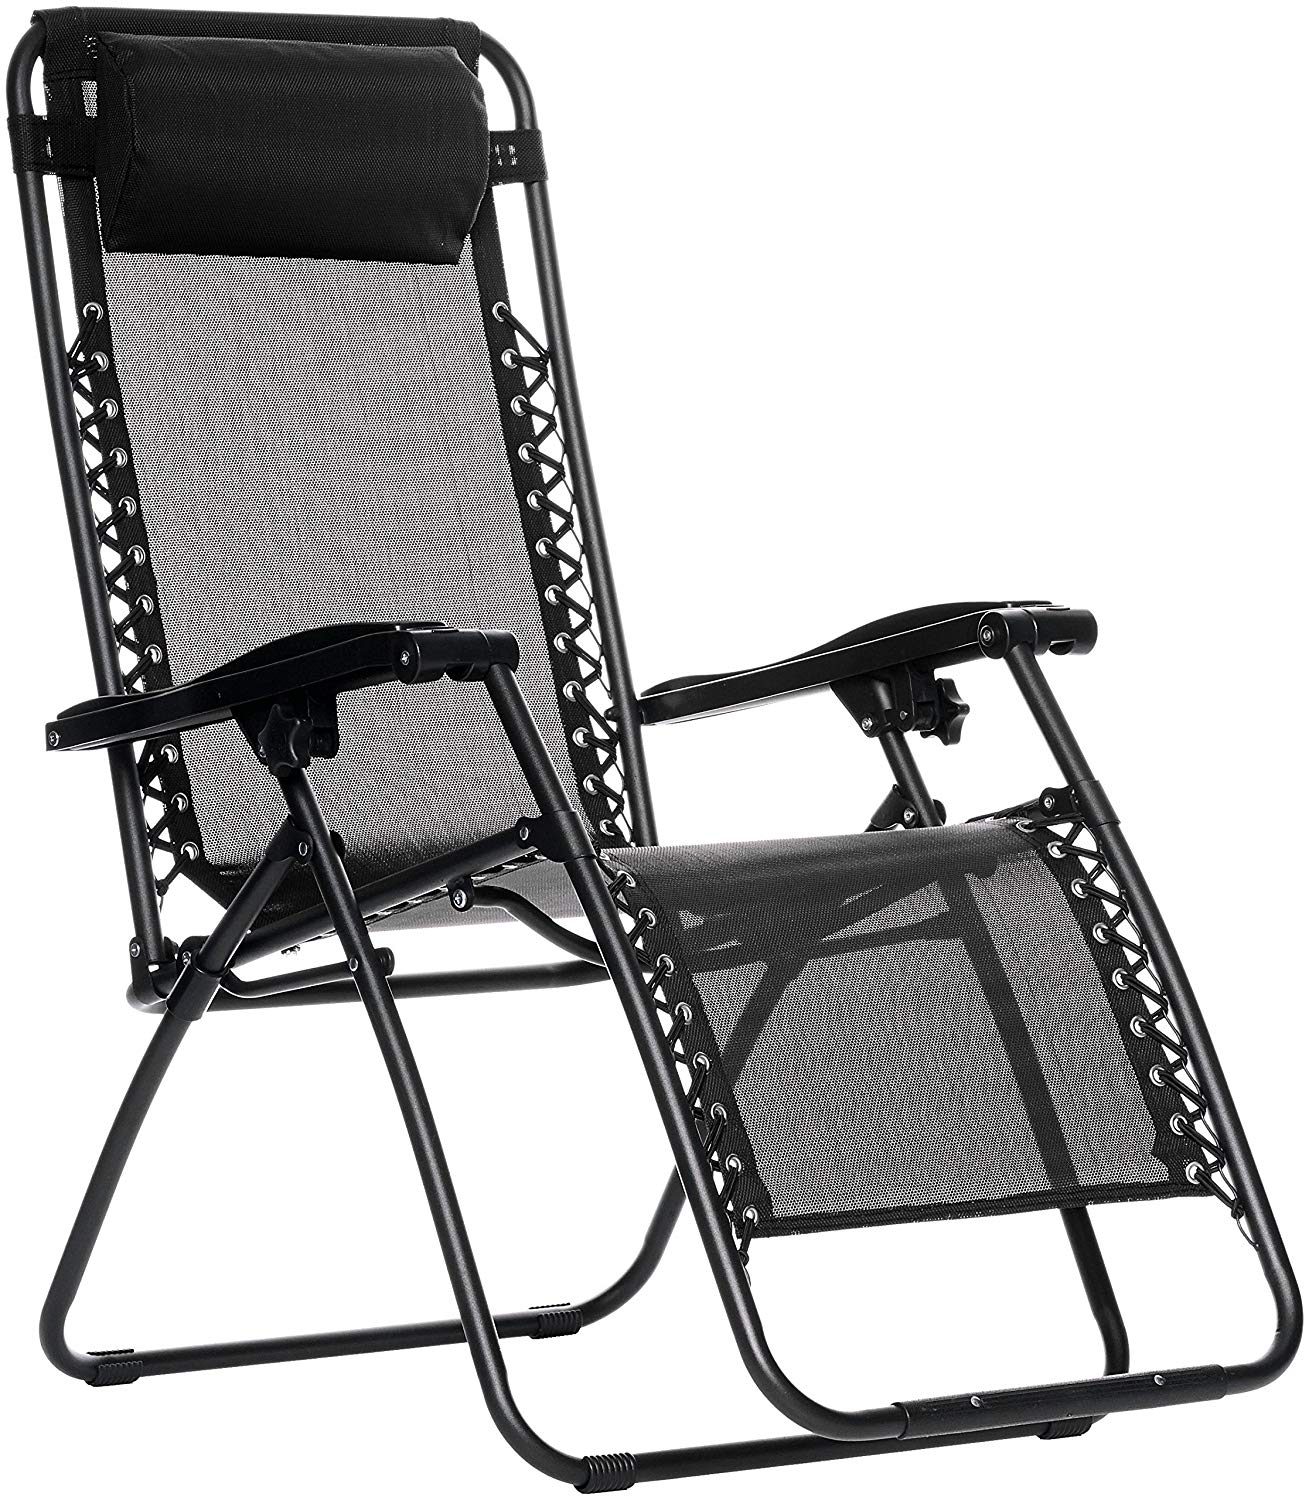 Top 10 Best Camping Chair For Bad Back 2021 Reviews 8